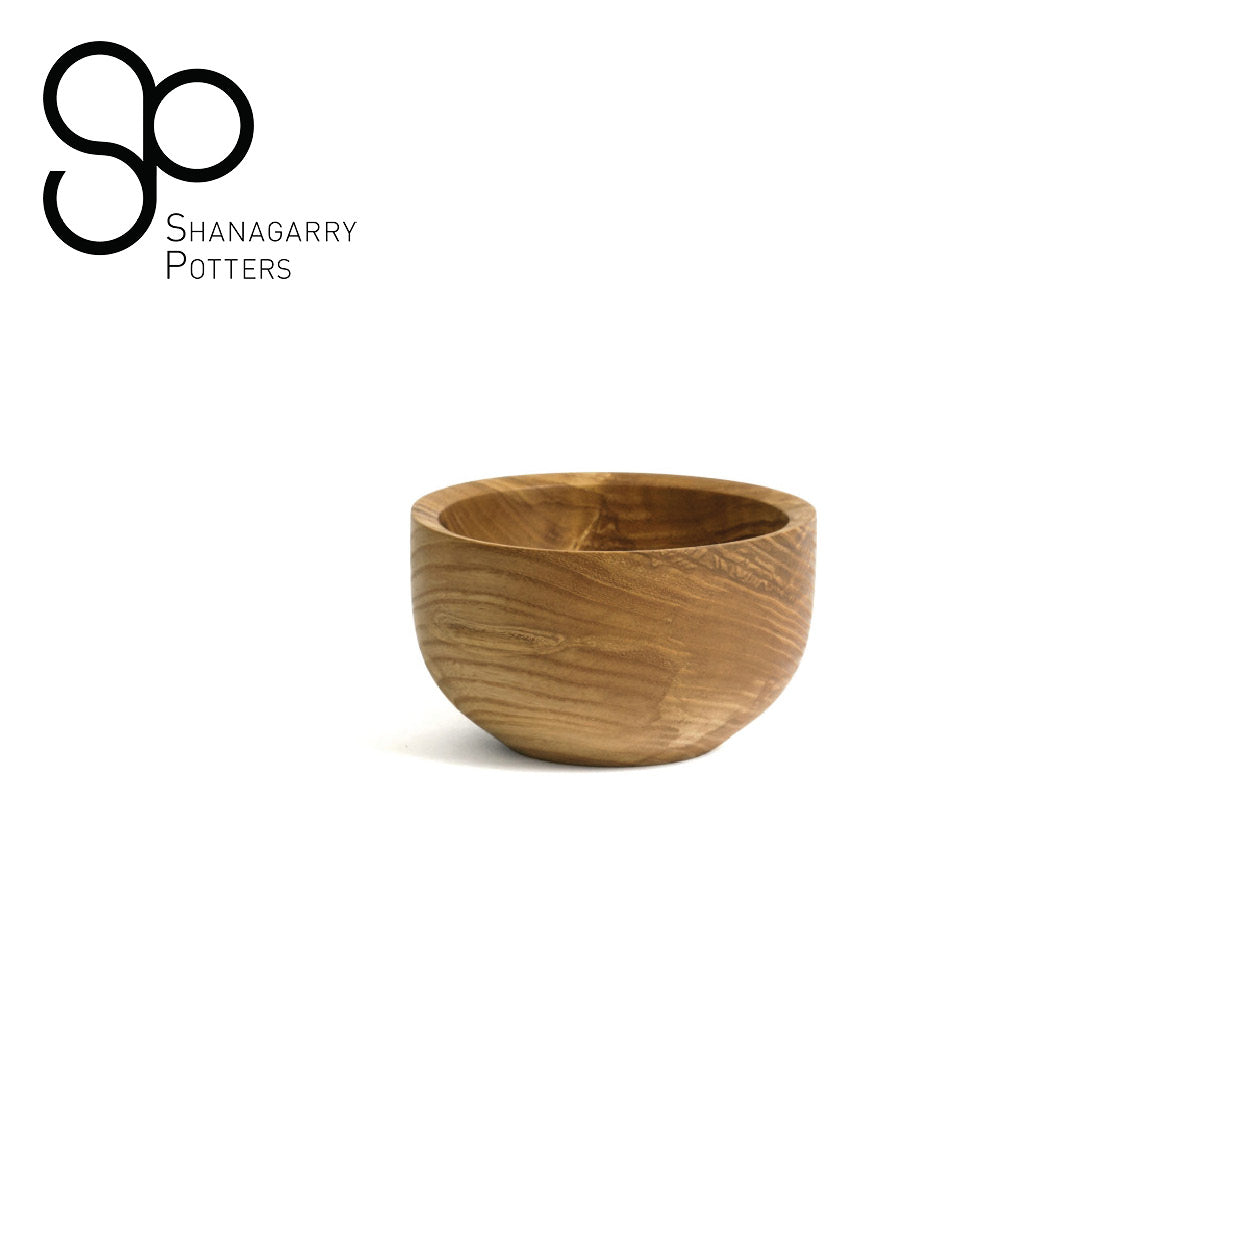 Liam O'Neill - Small Flared Bowl